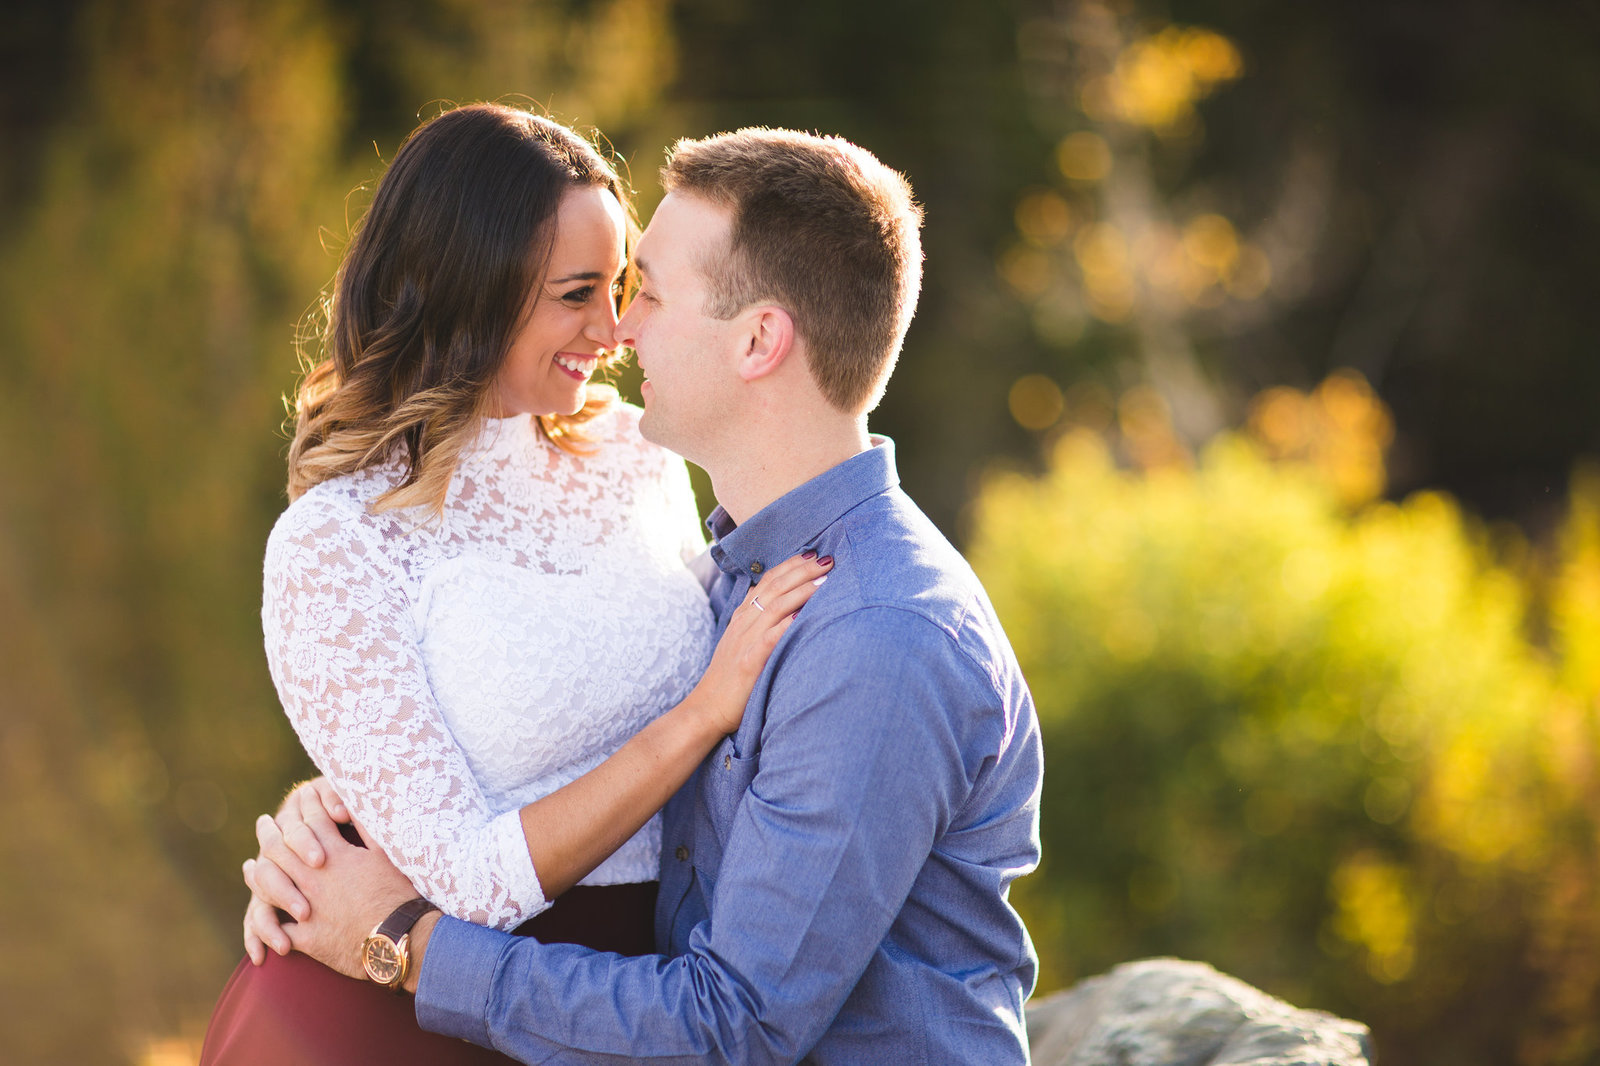 Saint John Engagement Photos by Jordan & Judith - Saint John NB Wedding Photographers and Filmmakers4